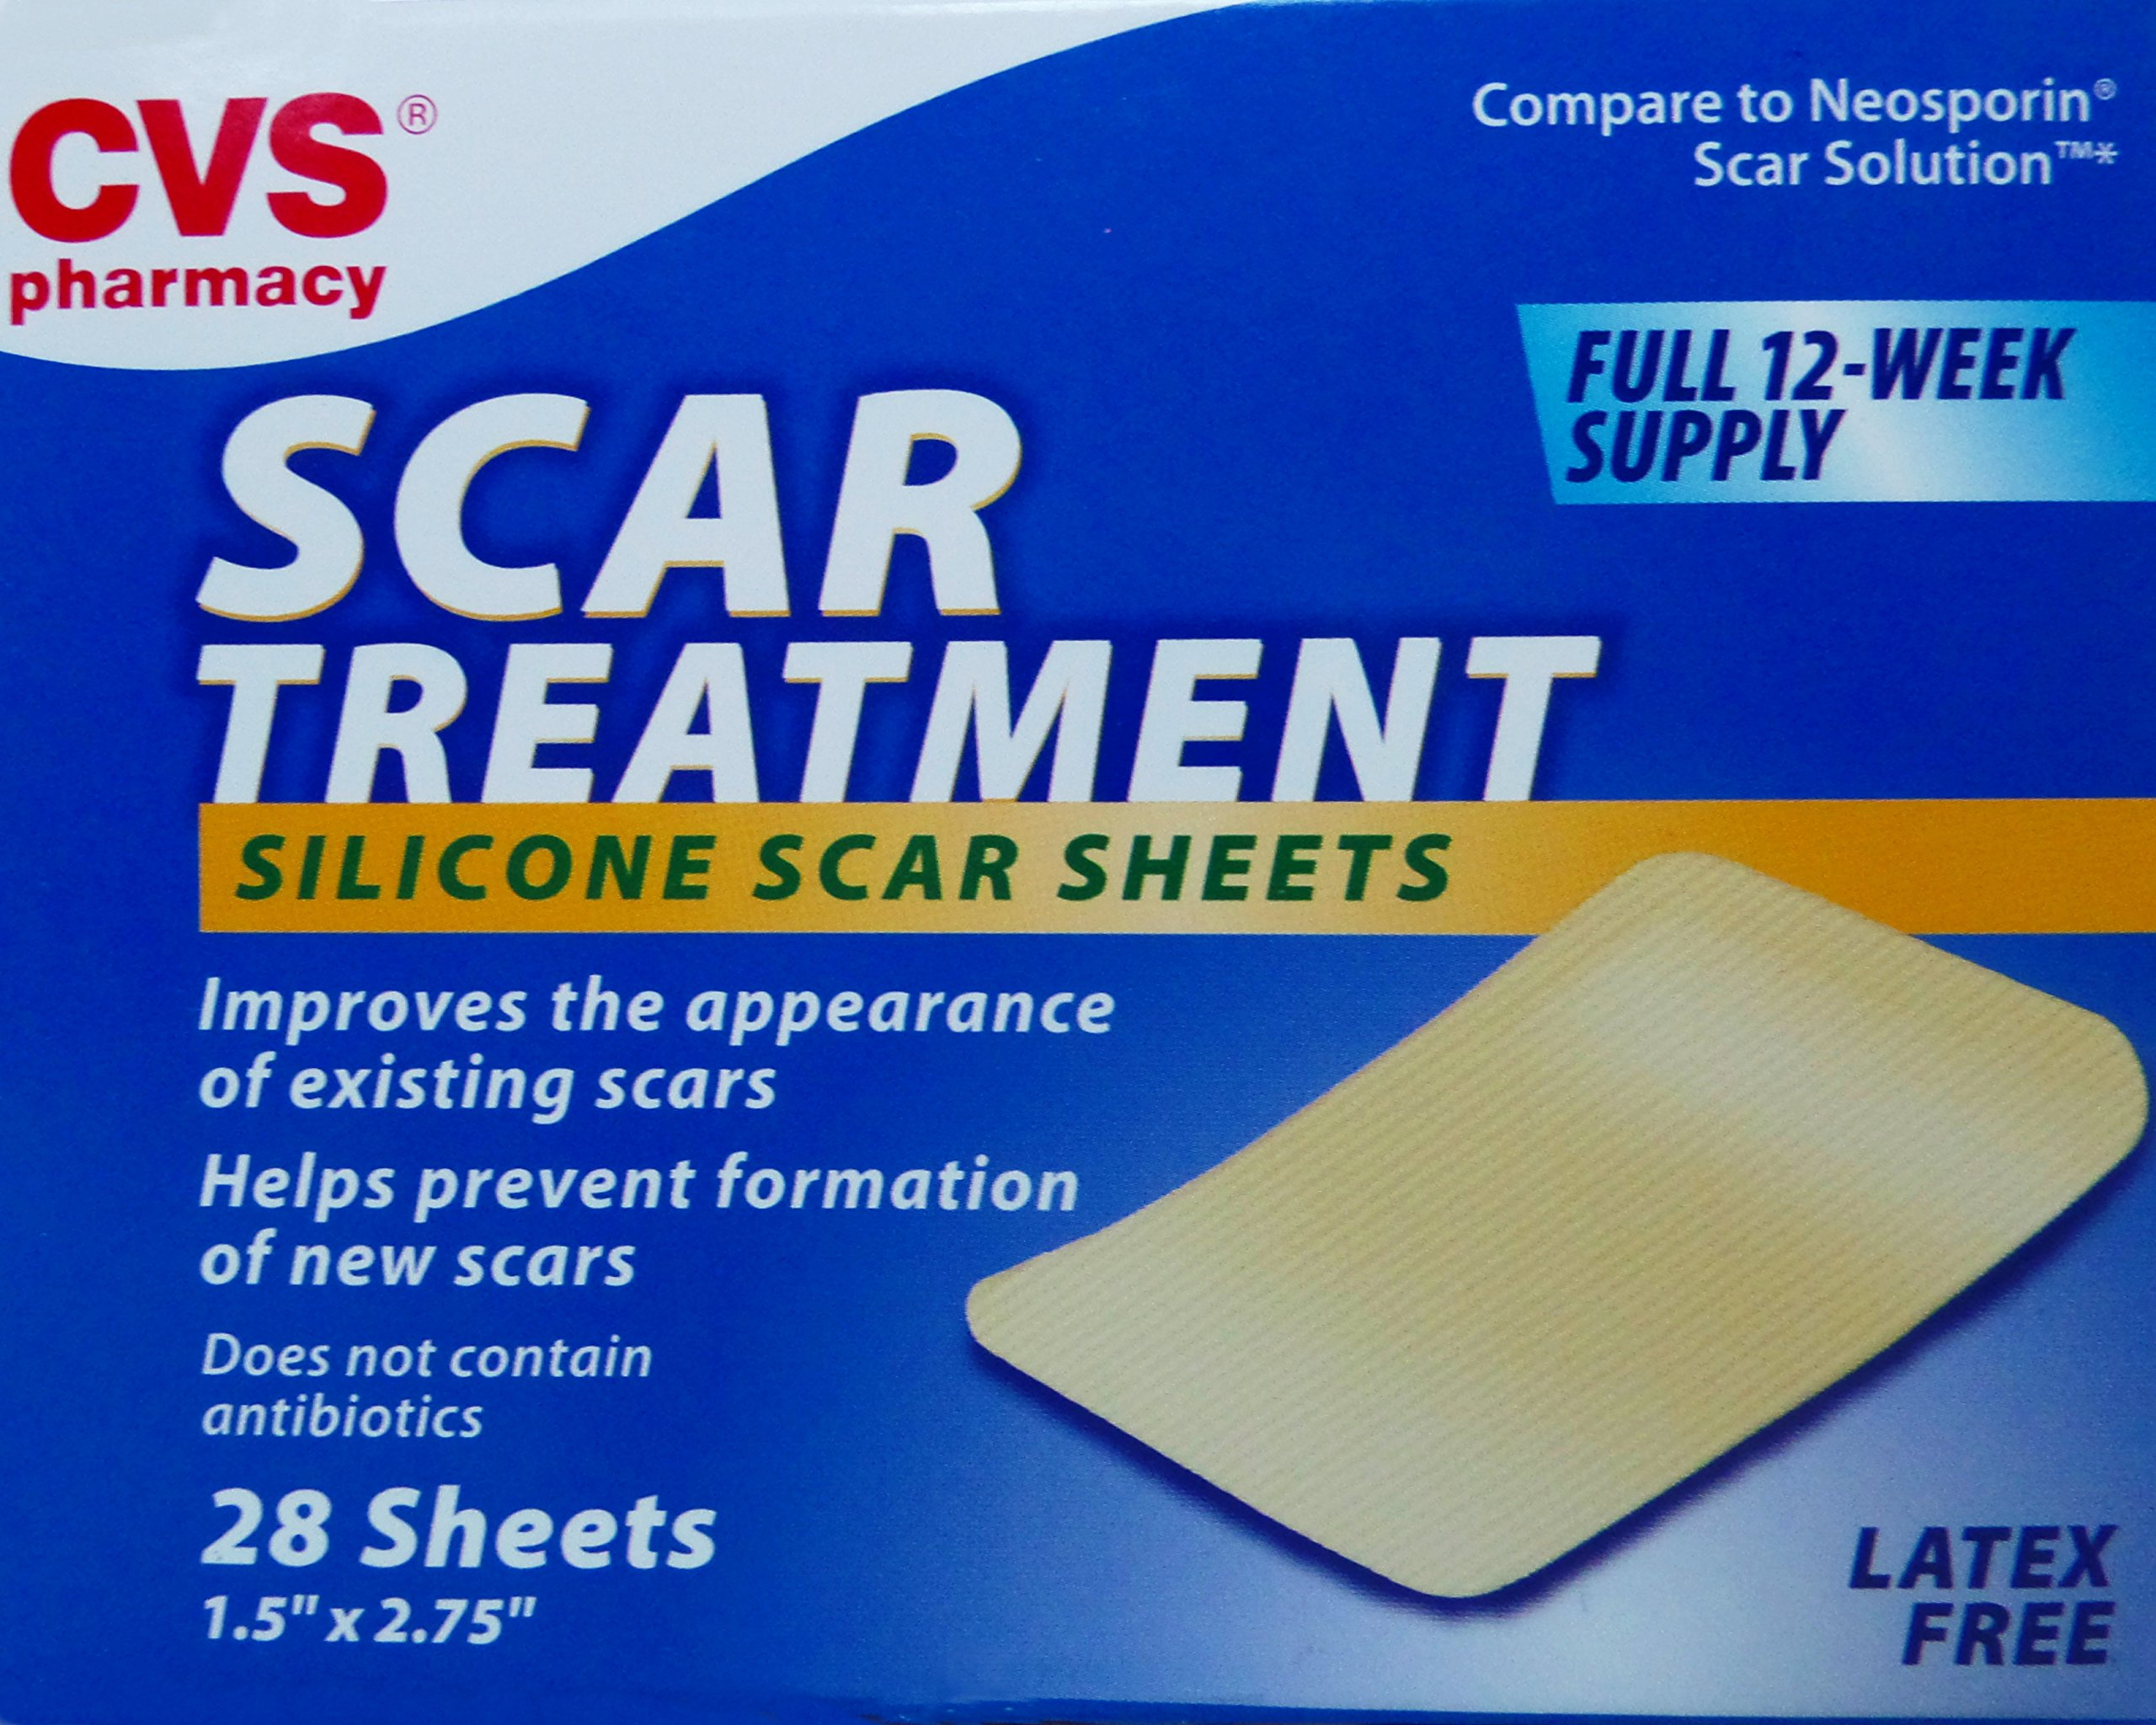 Cvs Scar Treatment Silicone Scar Sheets 12 Week Supply Buy Online In Cayman Islands Brand Cvs Products In